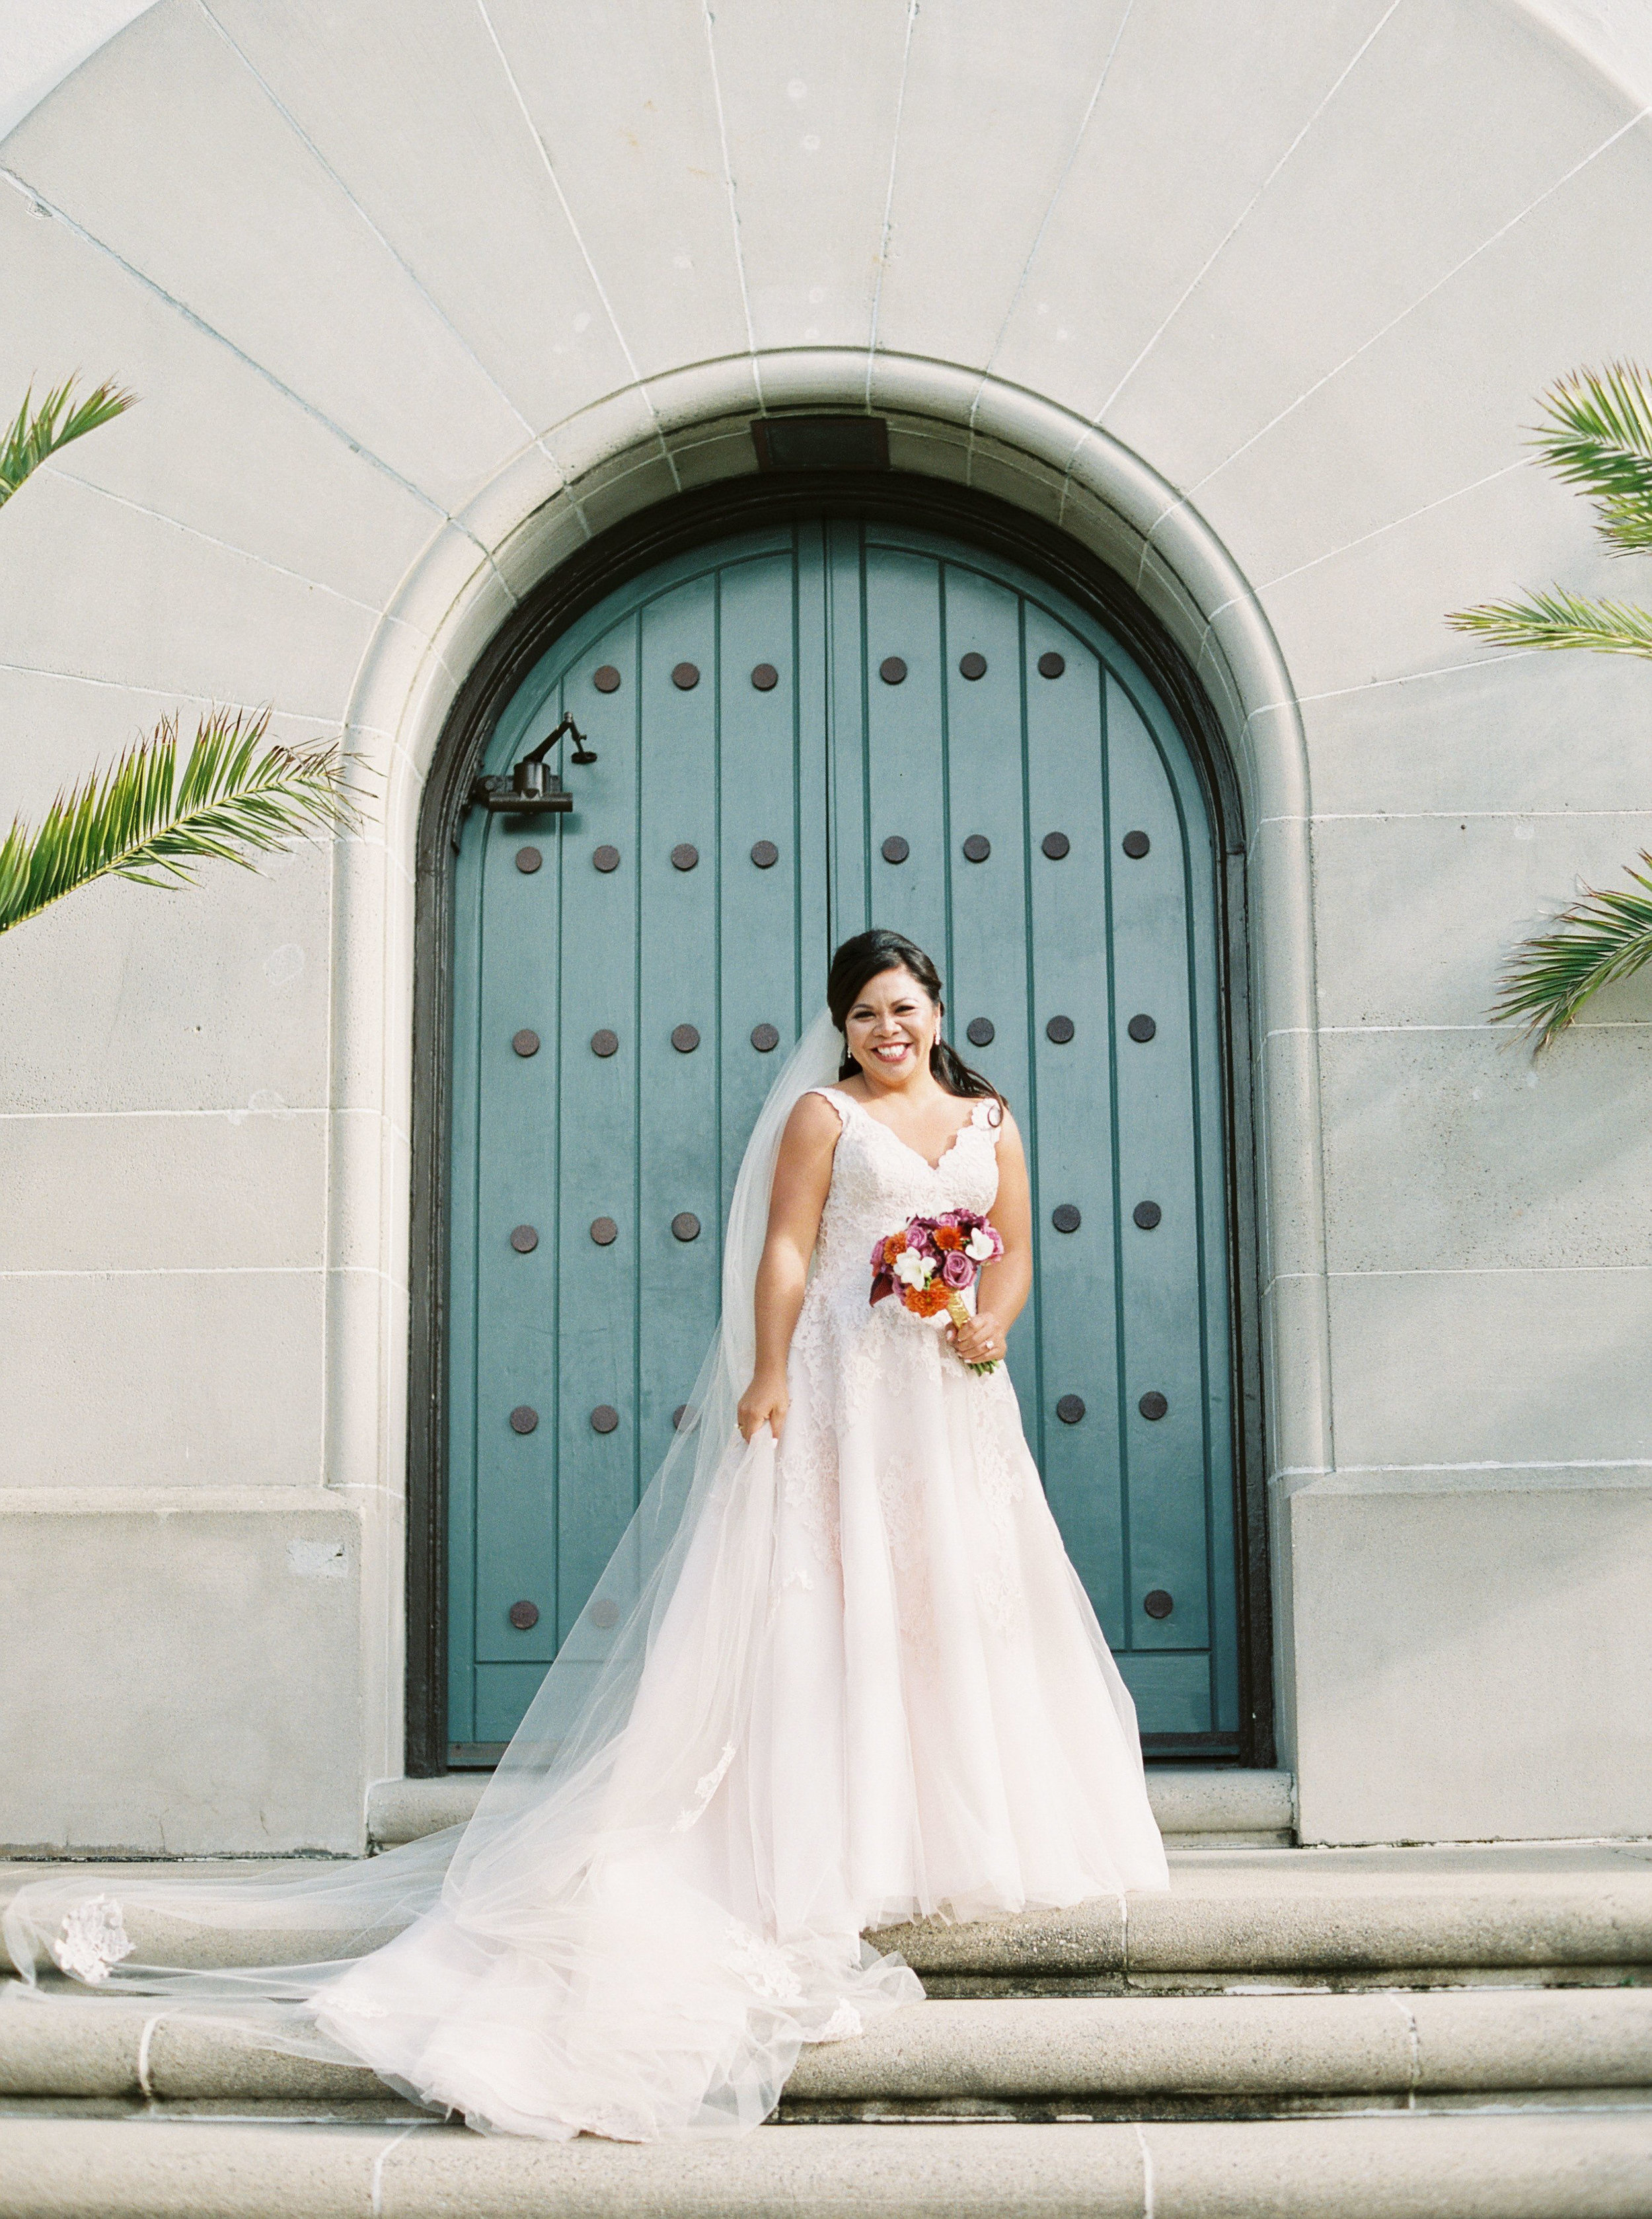 style-inspired-wedding-at-firehouse-8-in-san-francisco-116.jpg